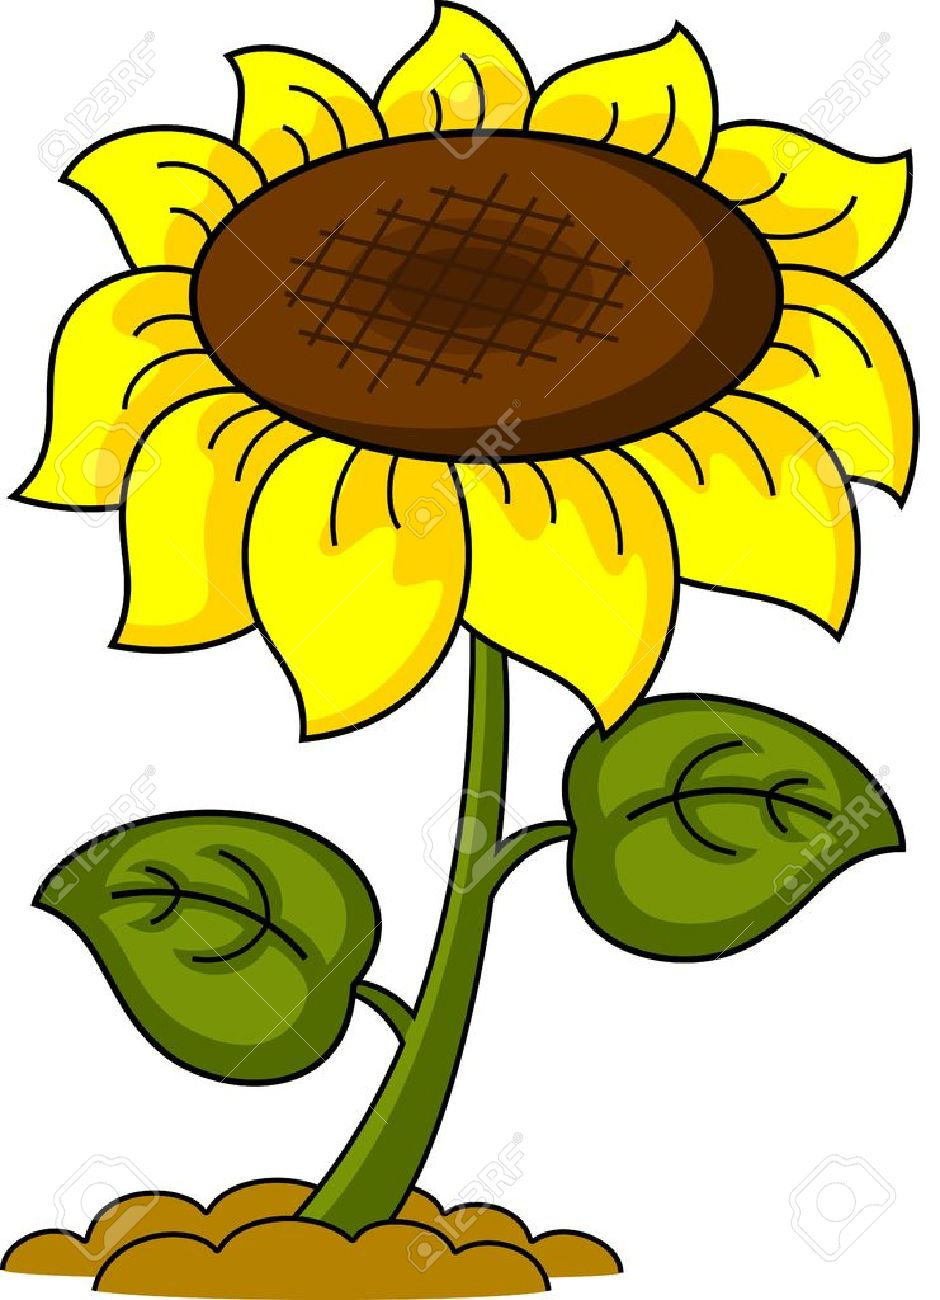 Ilration Of A Cartoon Sunflower Isolated Royalty Free